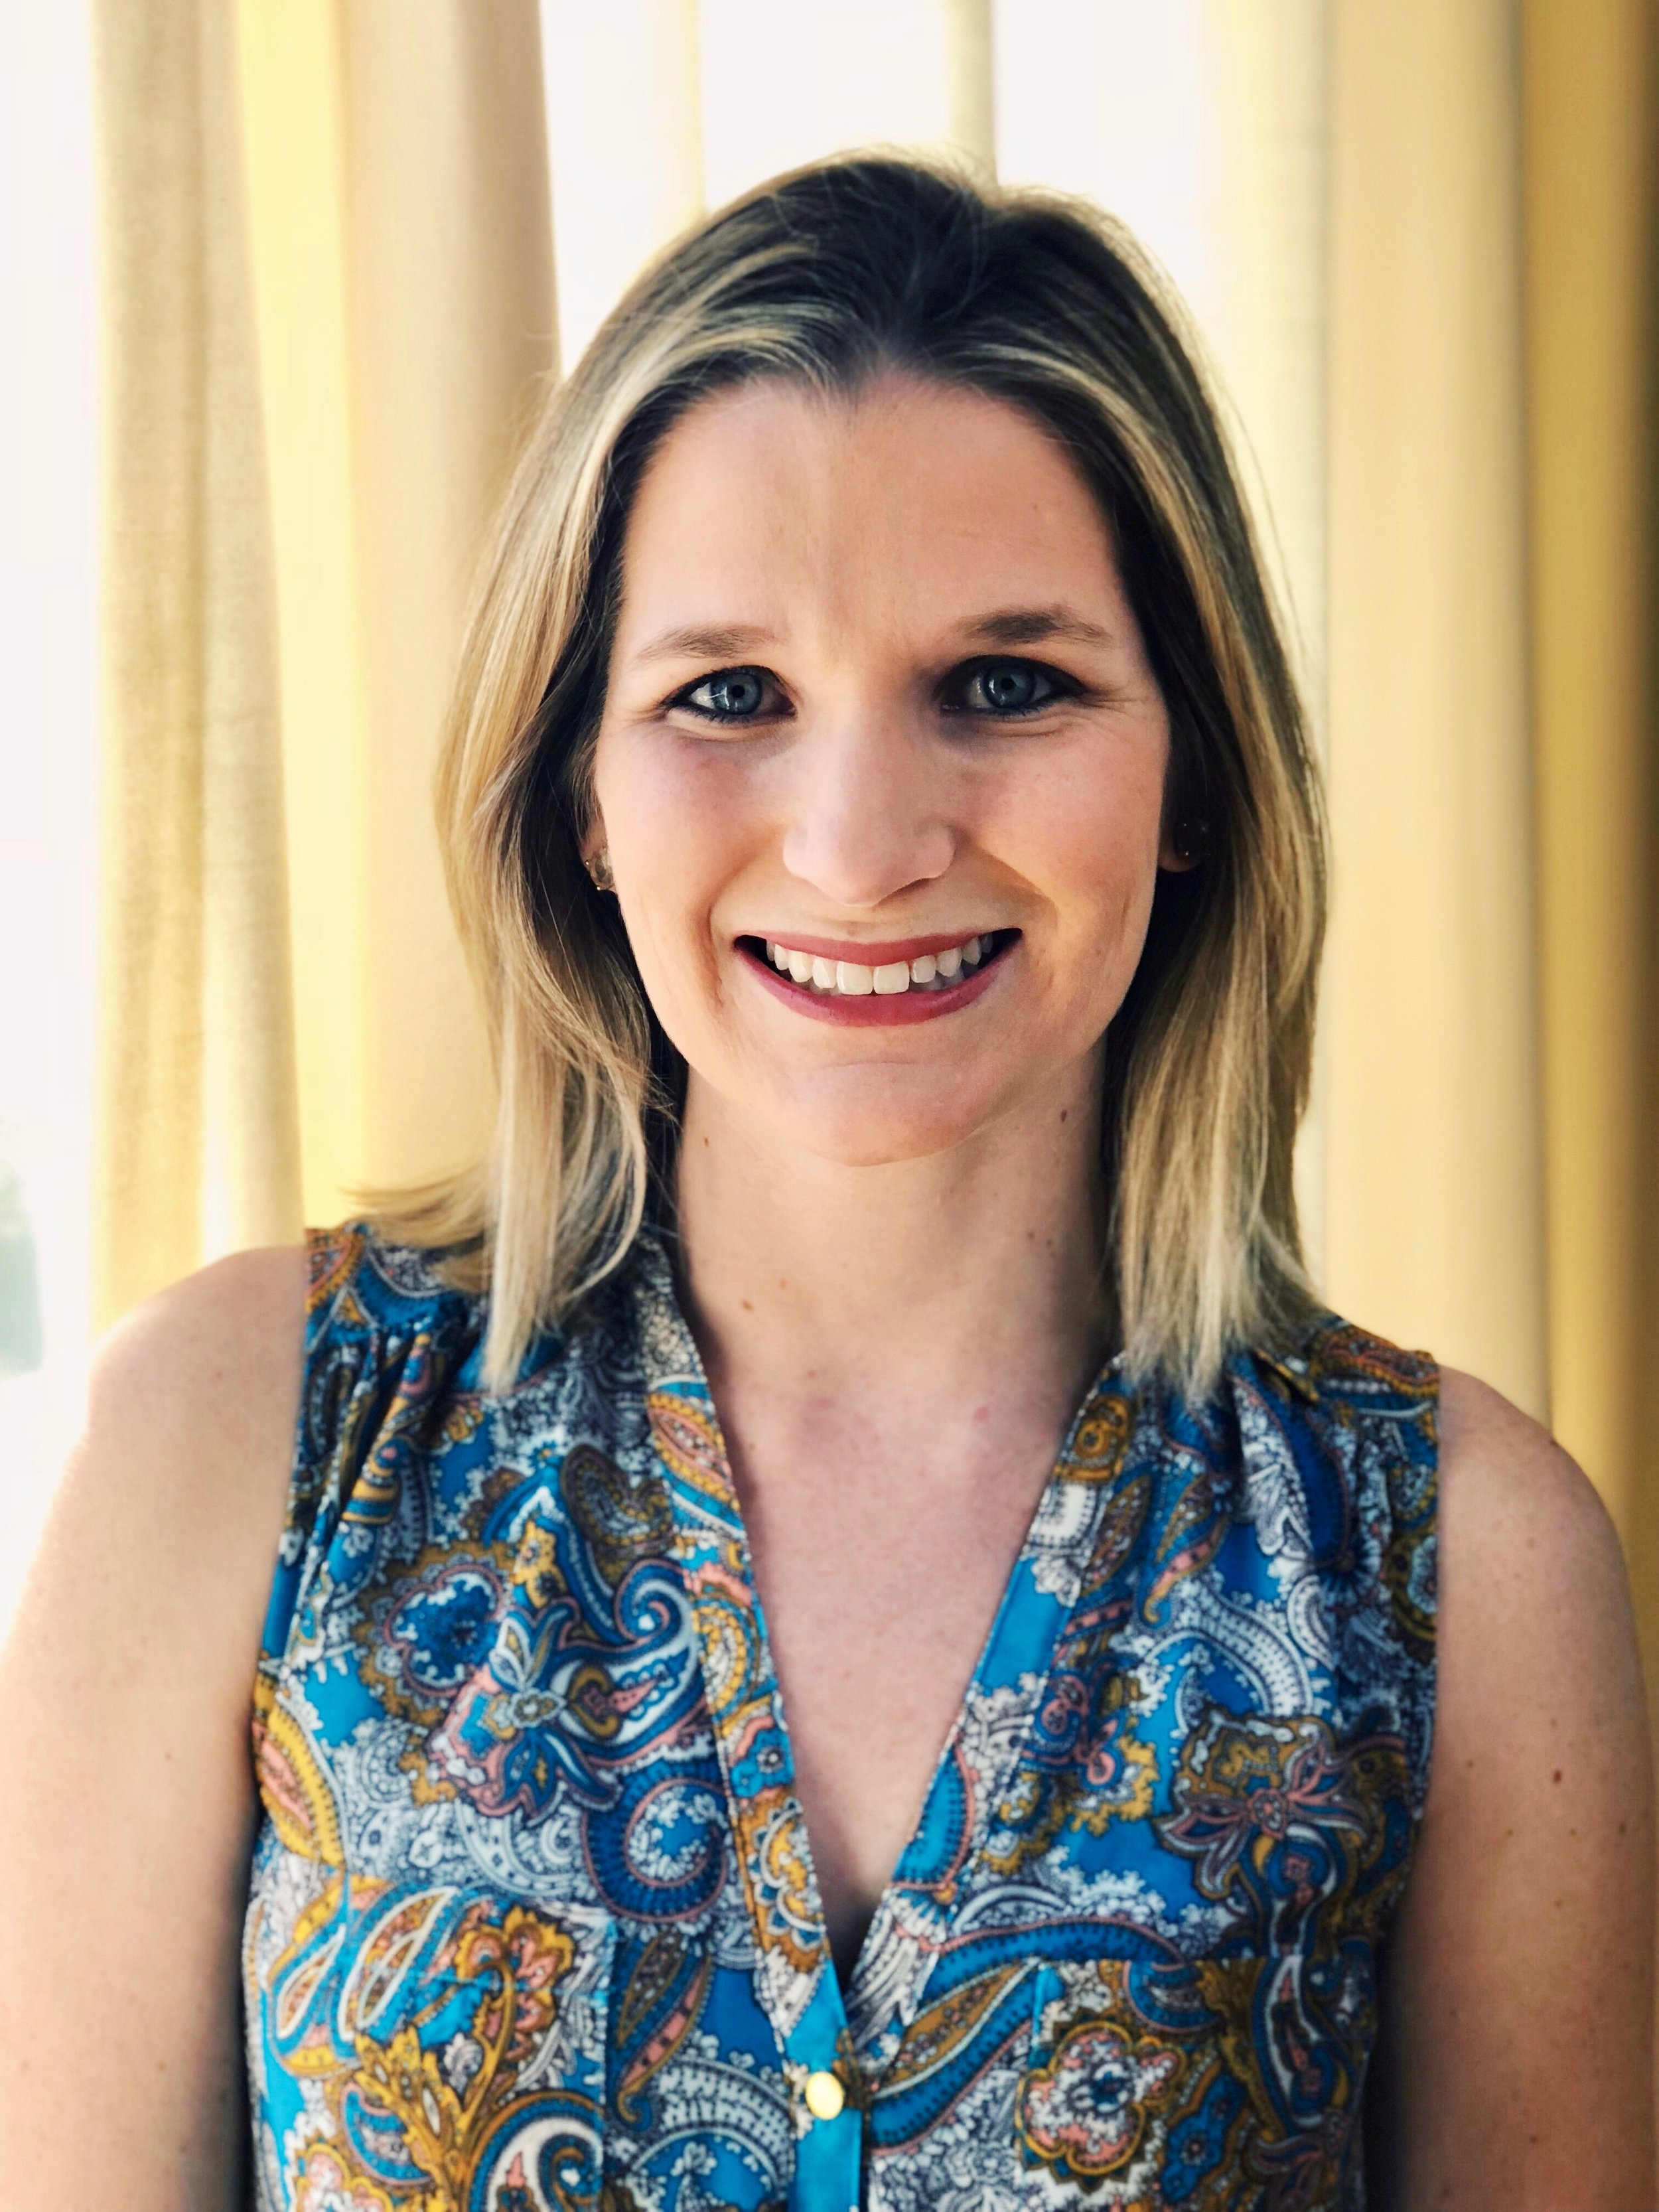 Shannon Gonter, Founder and Owner of b.mindful Louisville